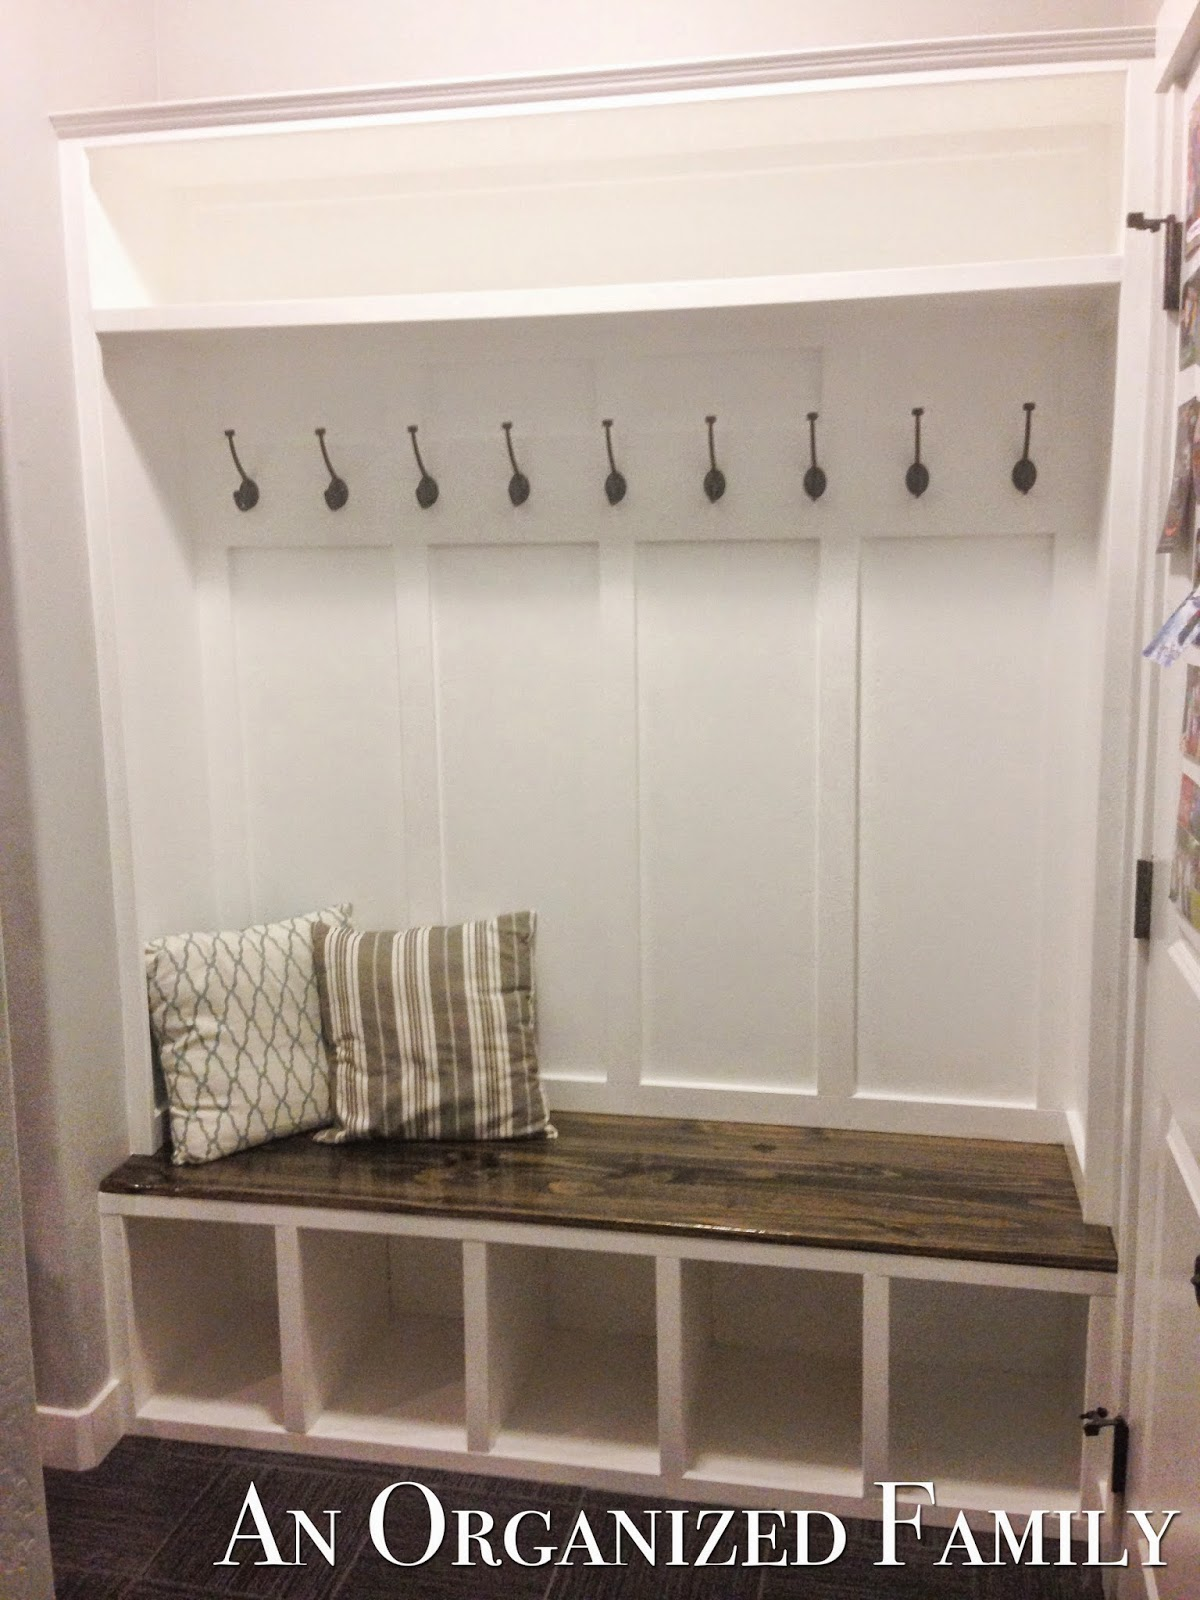 Nissa lynn interiors how to build a mudroom bench by amanda Mud room benches